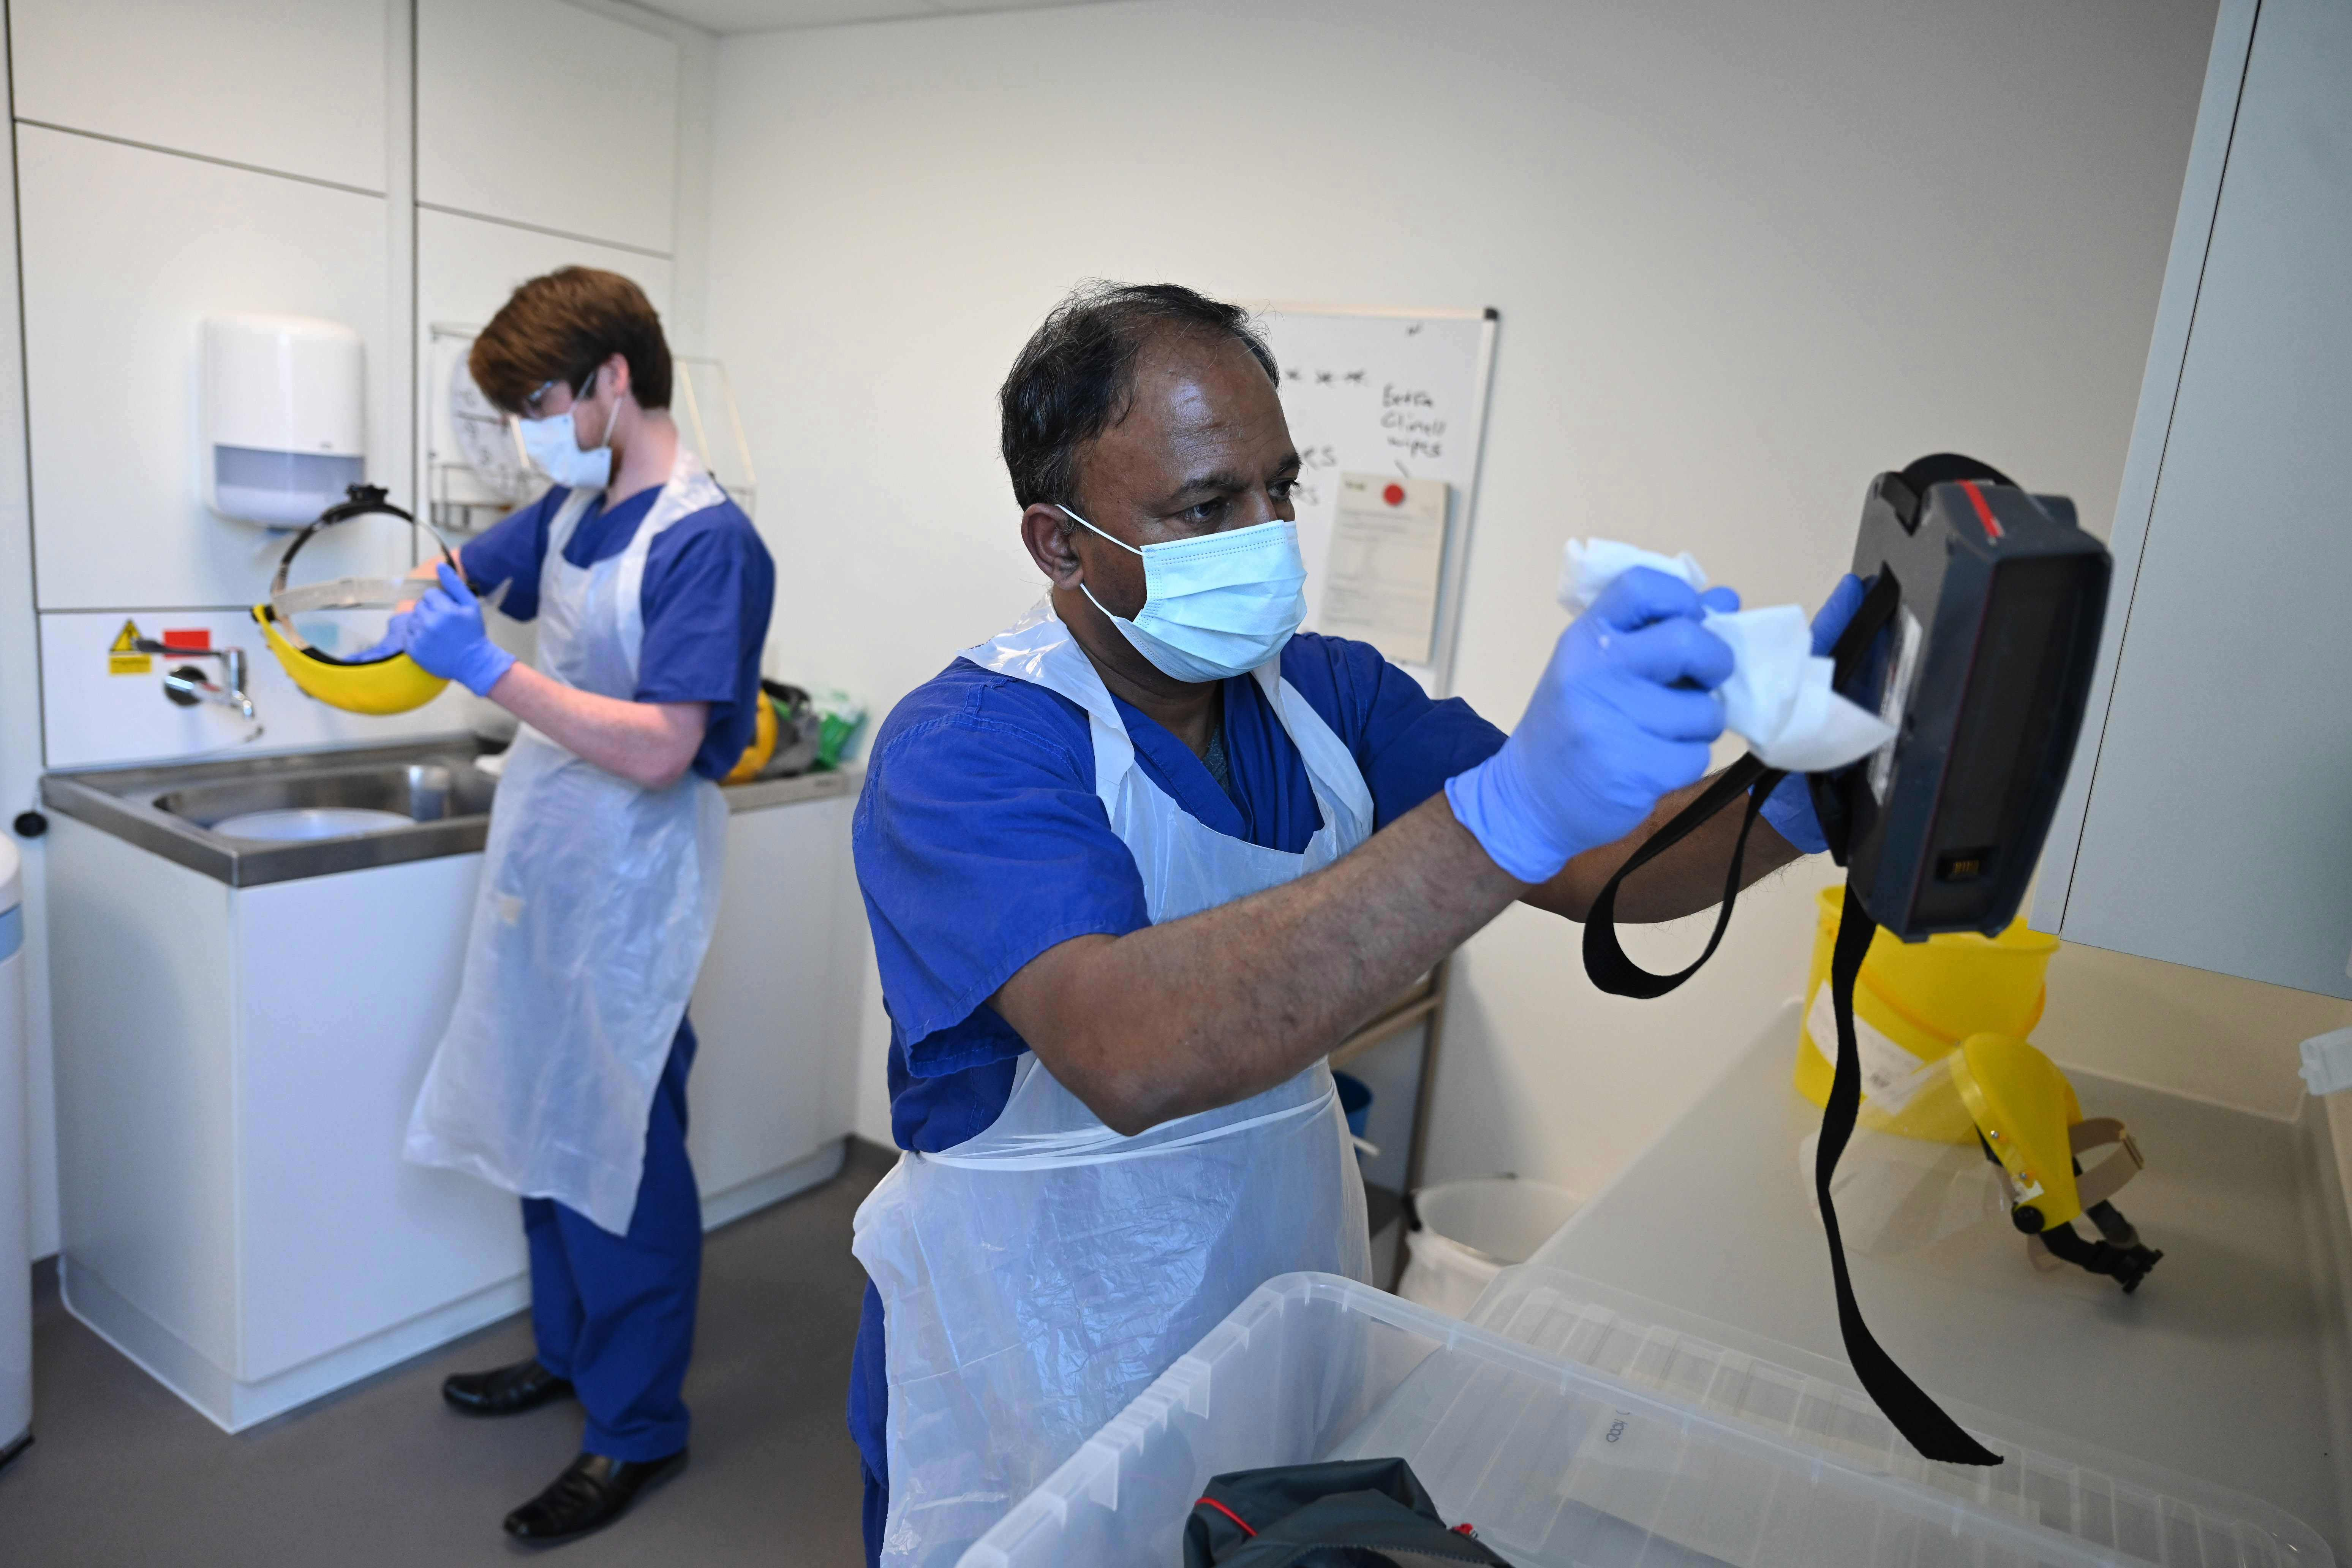 Clinical staff clean and sanitise personal protective equipment at Royal Papworth Hospital in Cambridge